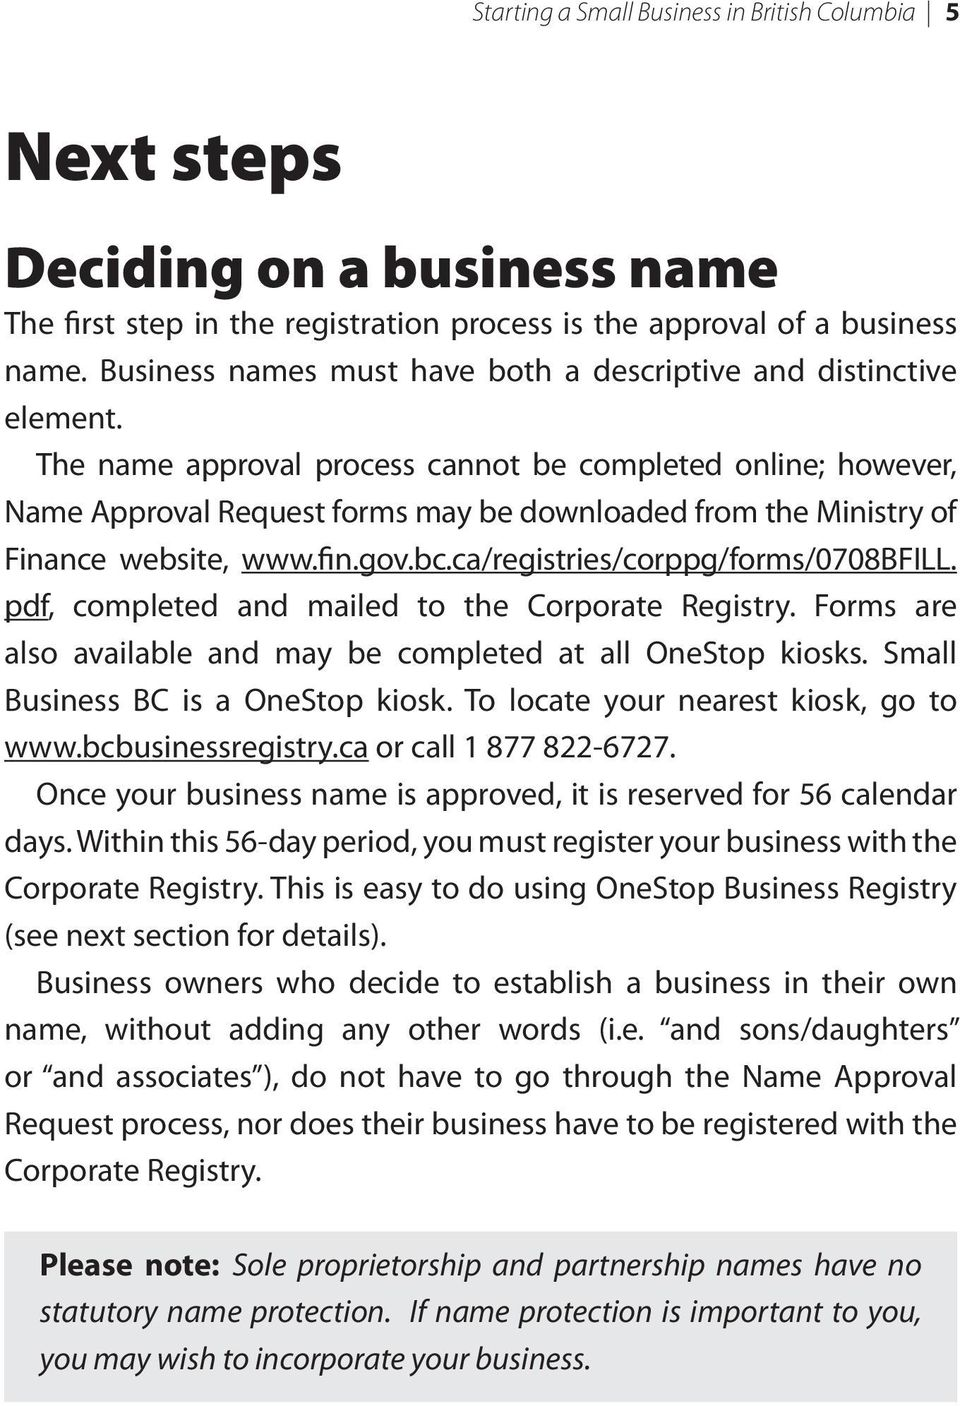 The name approval process cannot be completed online; however, Name Approval Request forms may be downloaded from the Ministry of Finance website, www.fin.gov.bc.ca/registries/corppg/forms/0708bfill.